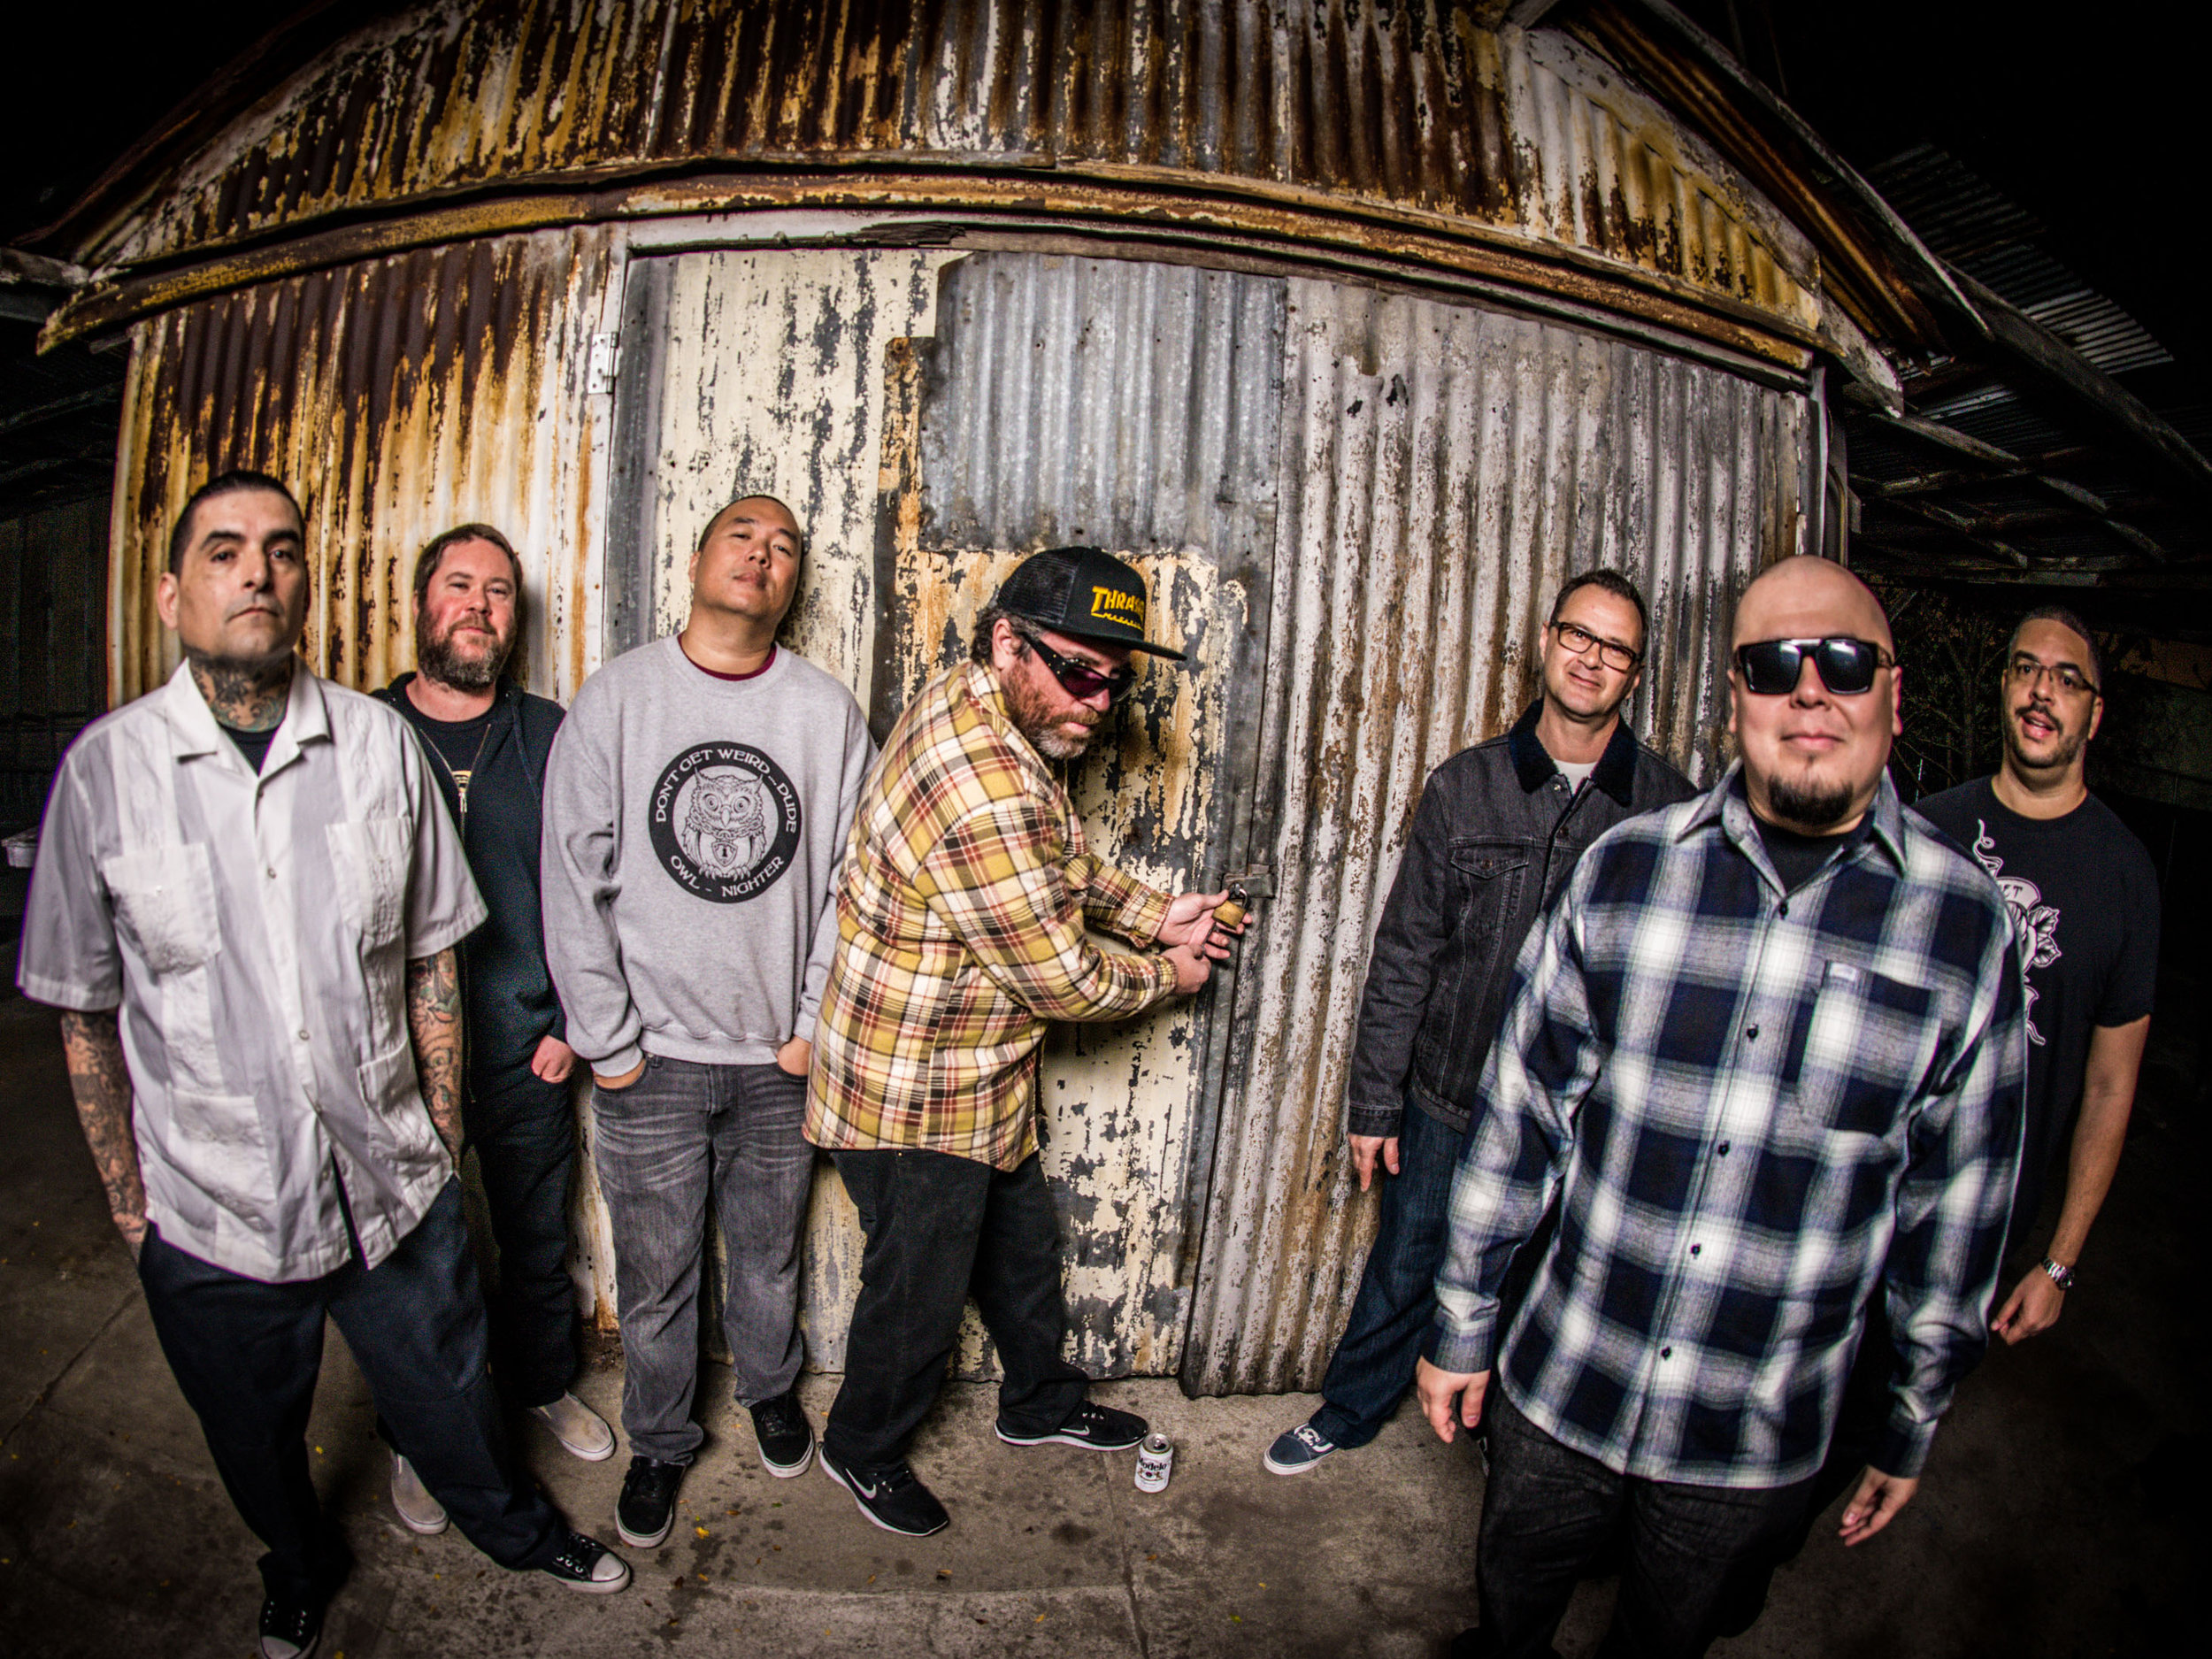 The Long Beach Dub All Stars, the Aggrolites and Mike Pinto will swing their national tour into Beach Haven on July 29.